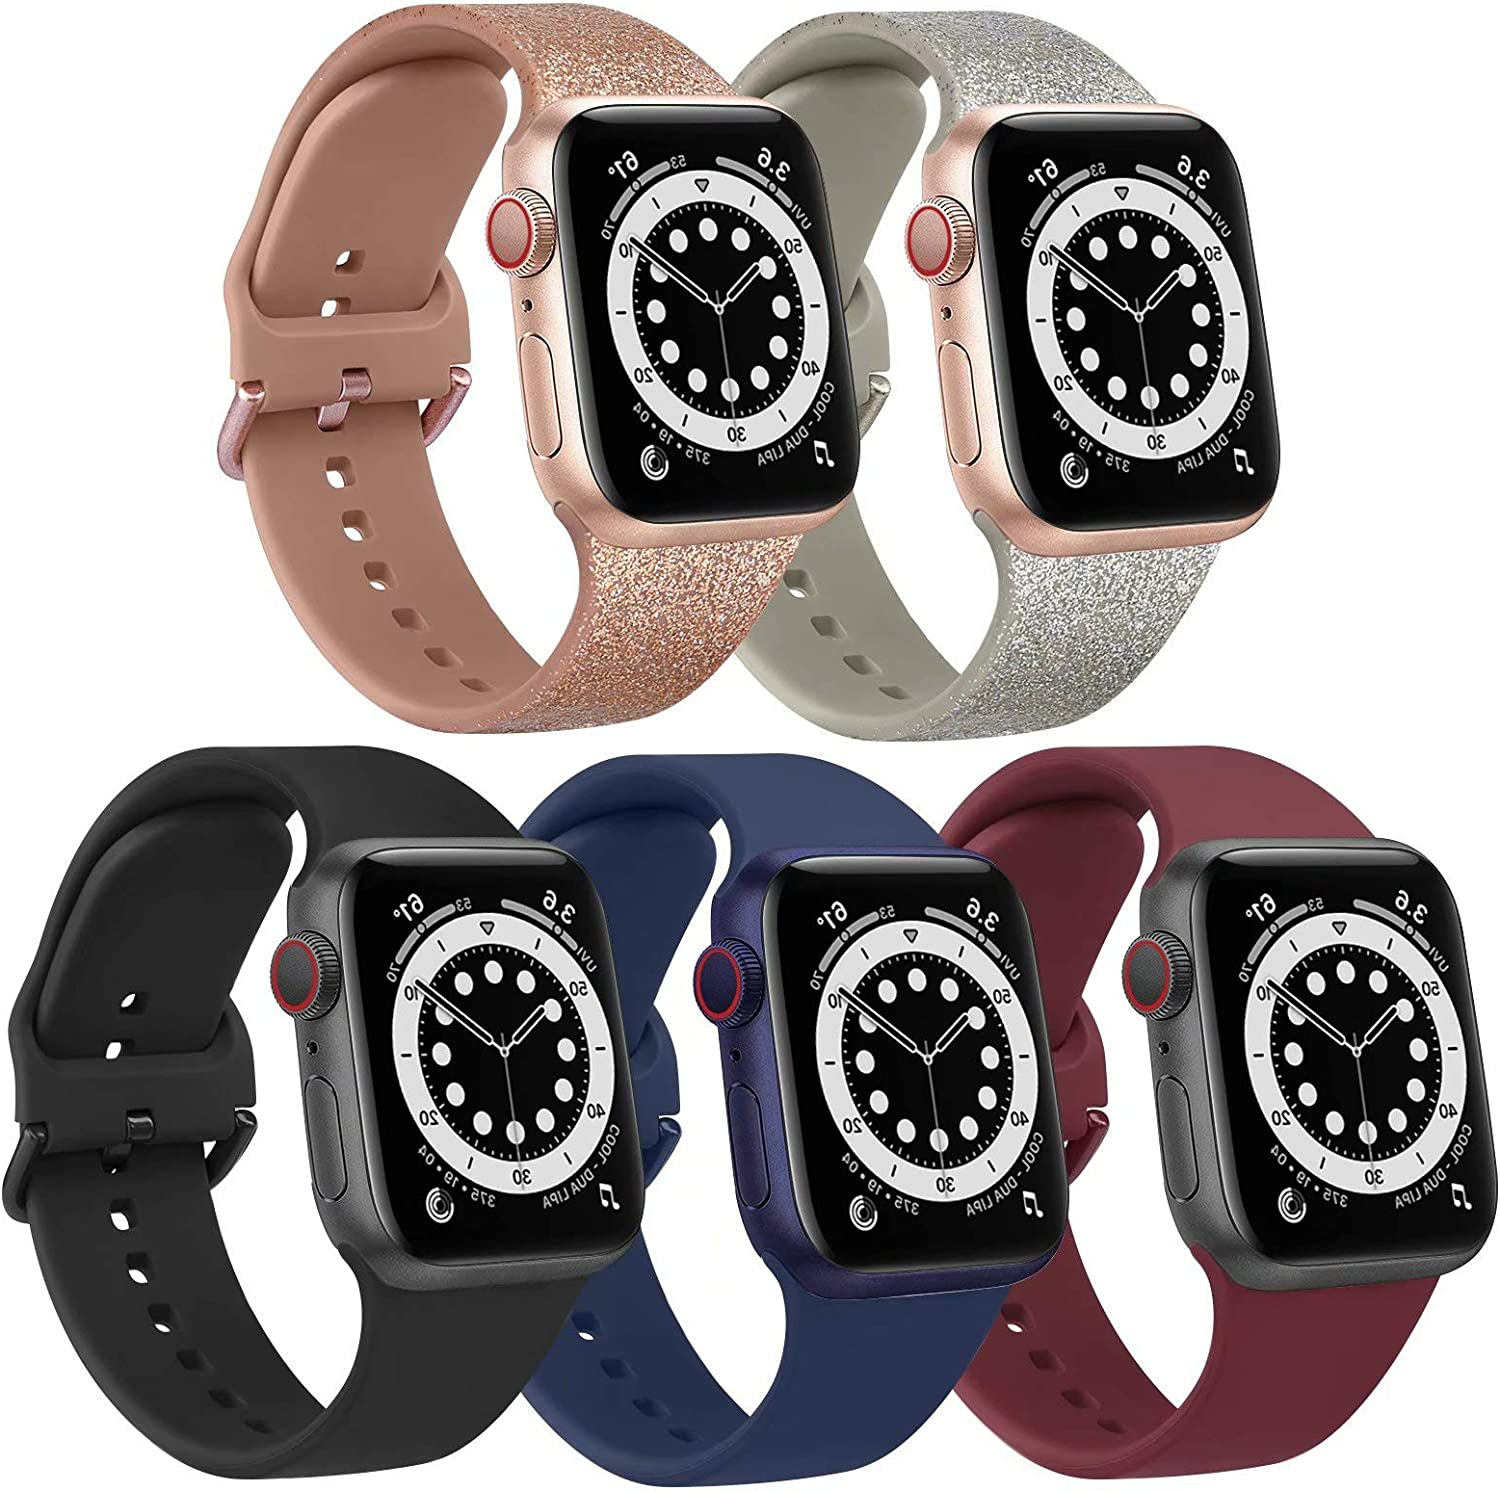 [5 Pack] Bands Compatible with Apple Watch Band 44mm 42mm Soft Silicone Sport Replacement Strap (42/44mm, Glitter Rose Gold/Glitter Silver/Black/Blue/Wine Red)